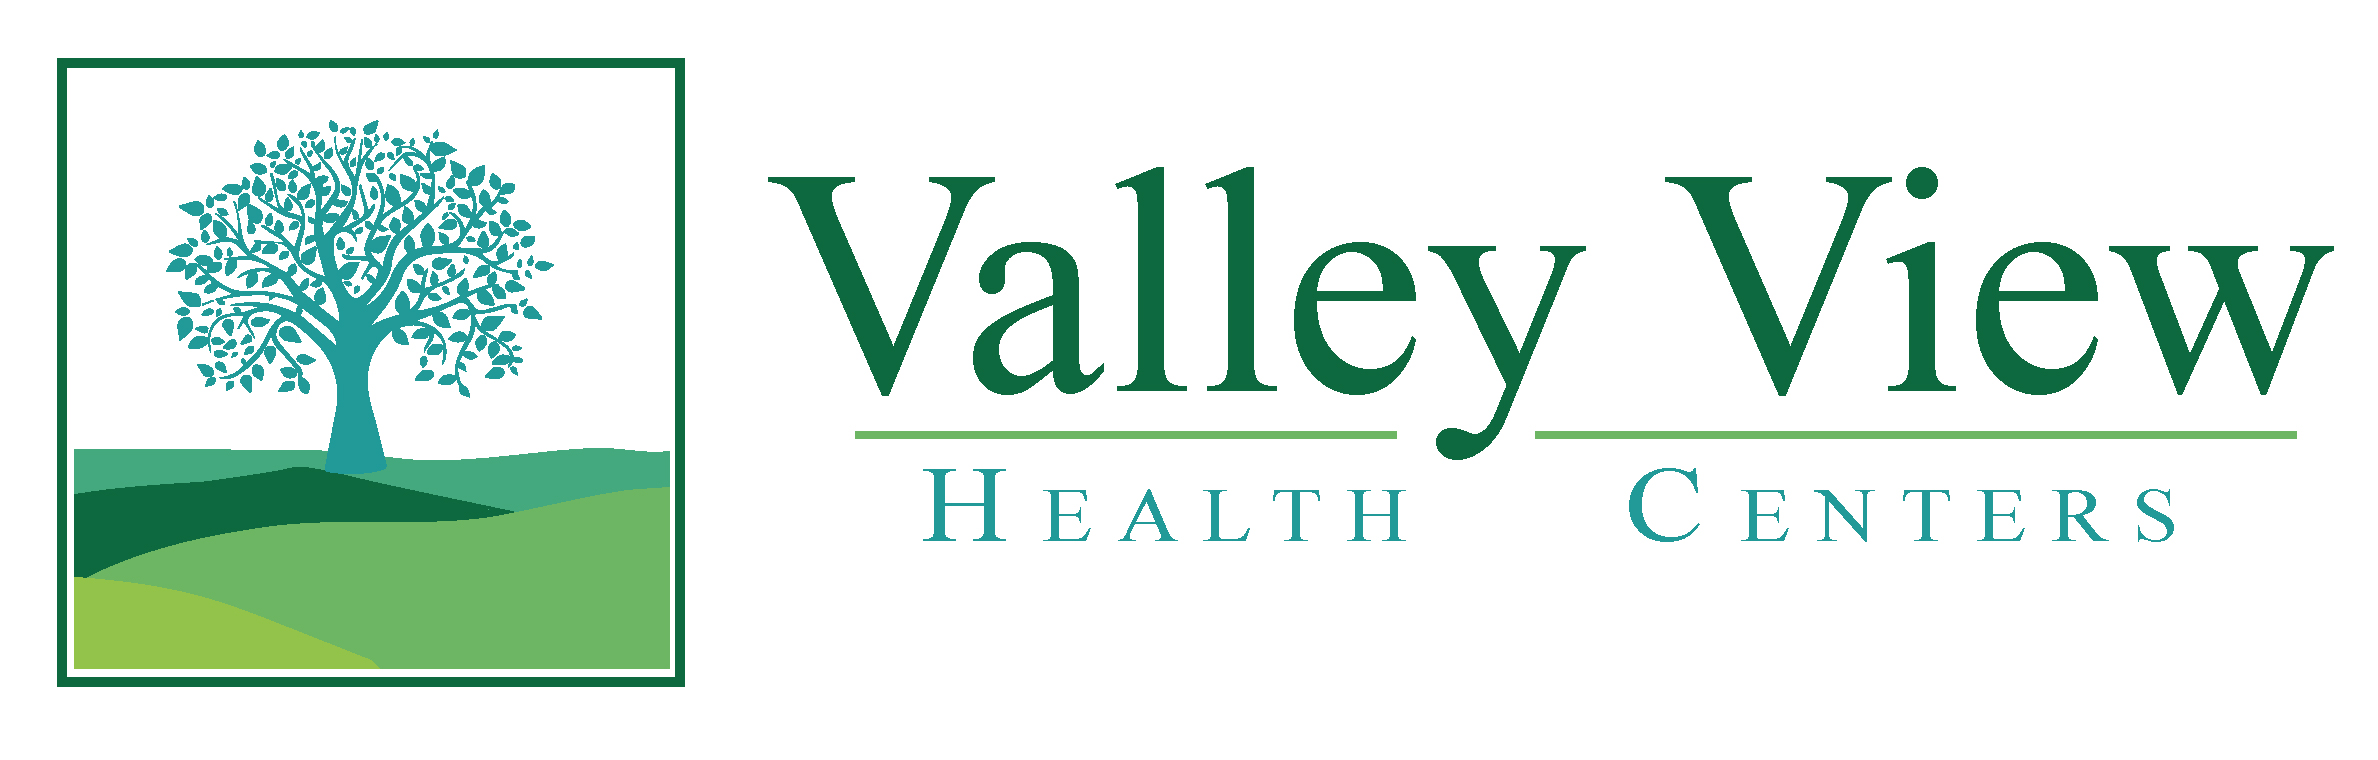 Valley View 2018 Logo-01-01.jpg